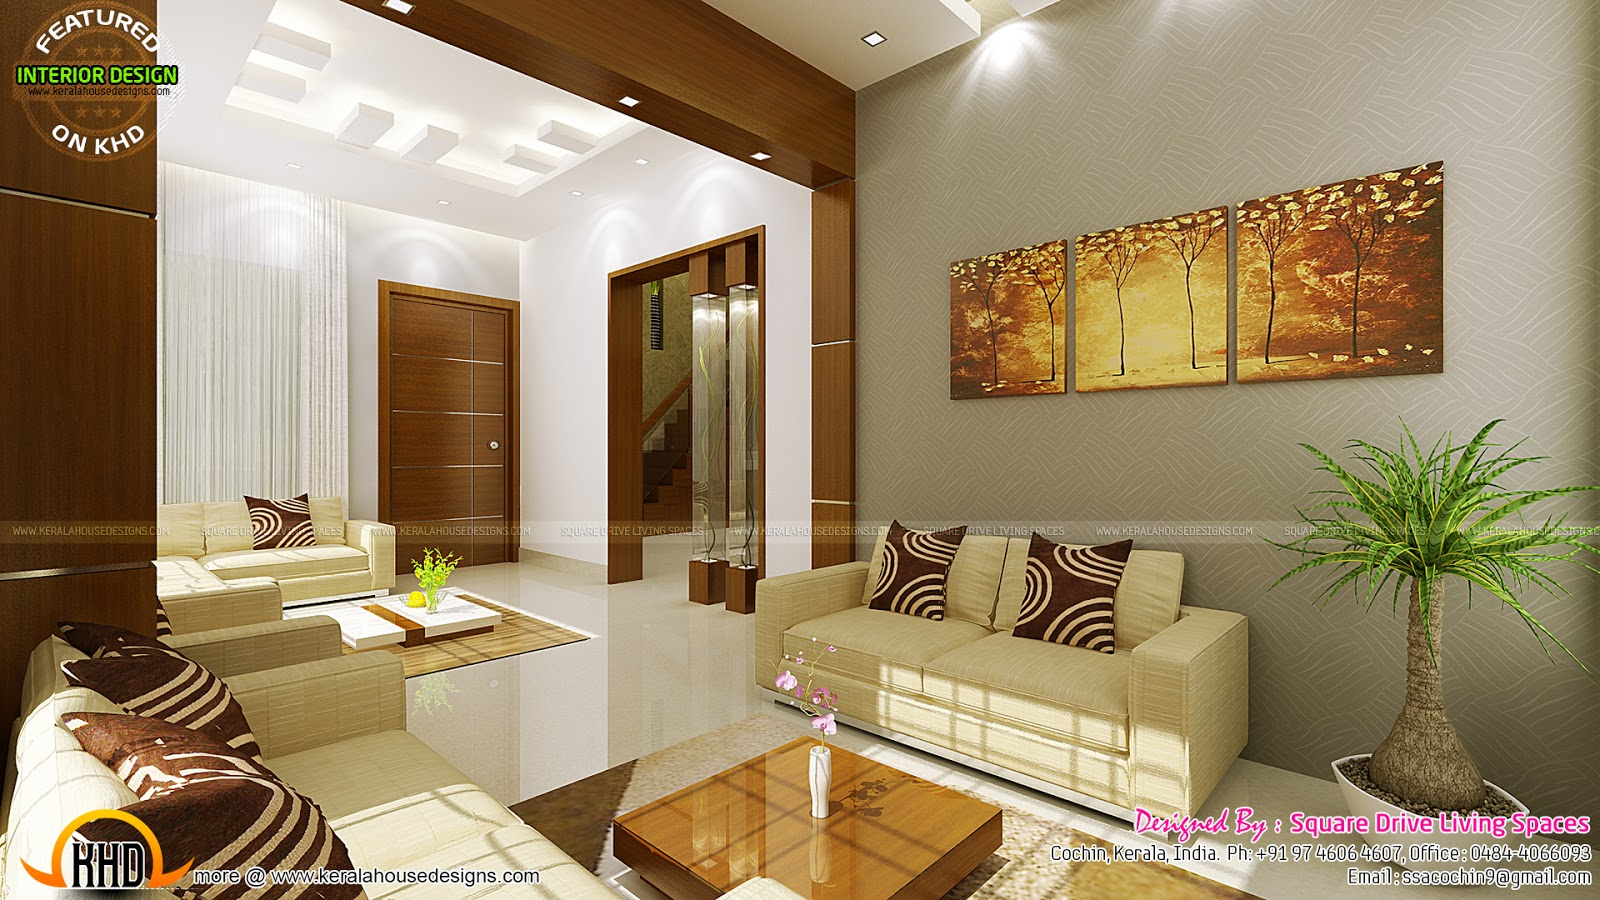 Contemporary kitchen dining and living room kerala home for Interior designs photos for home